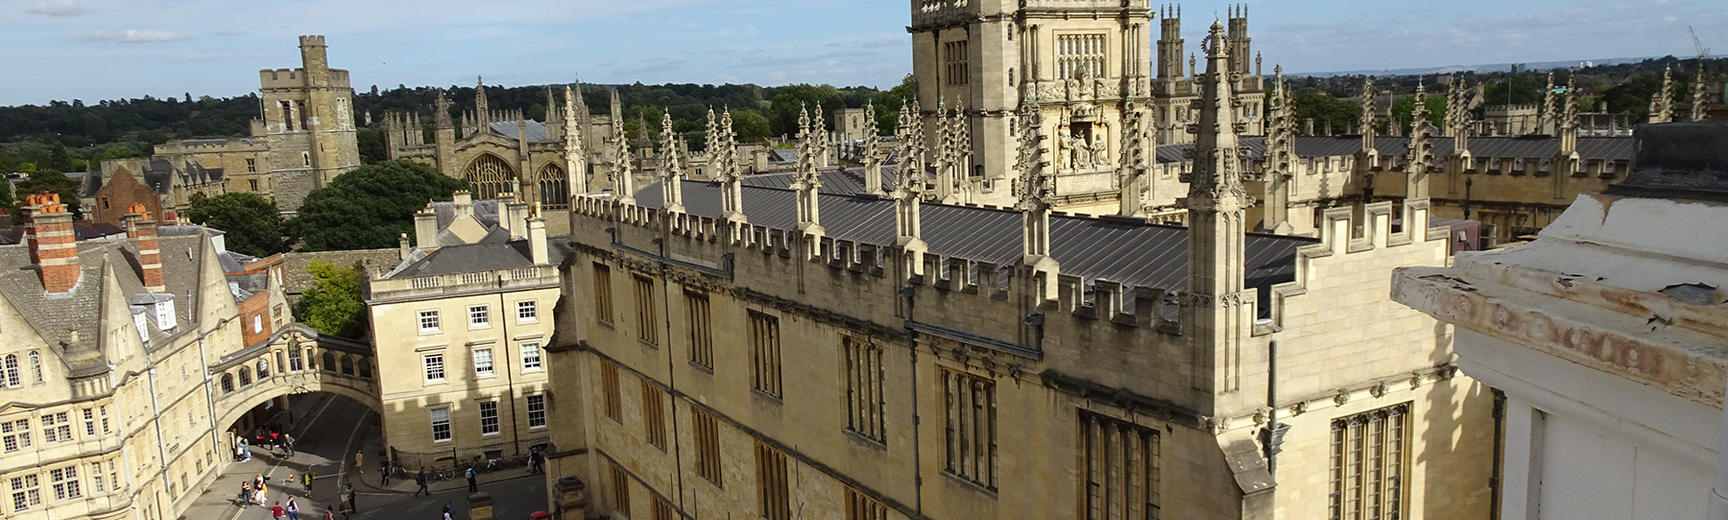 Bodleian Library home page banner